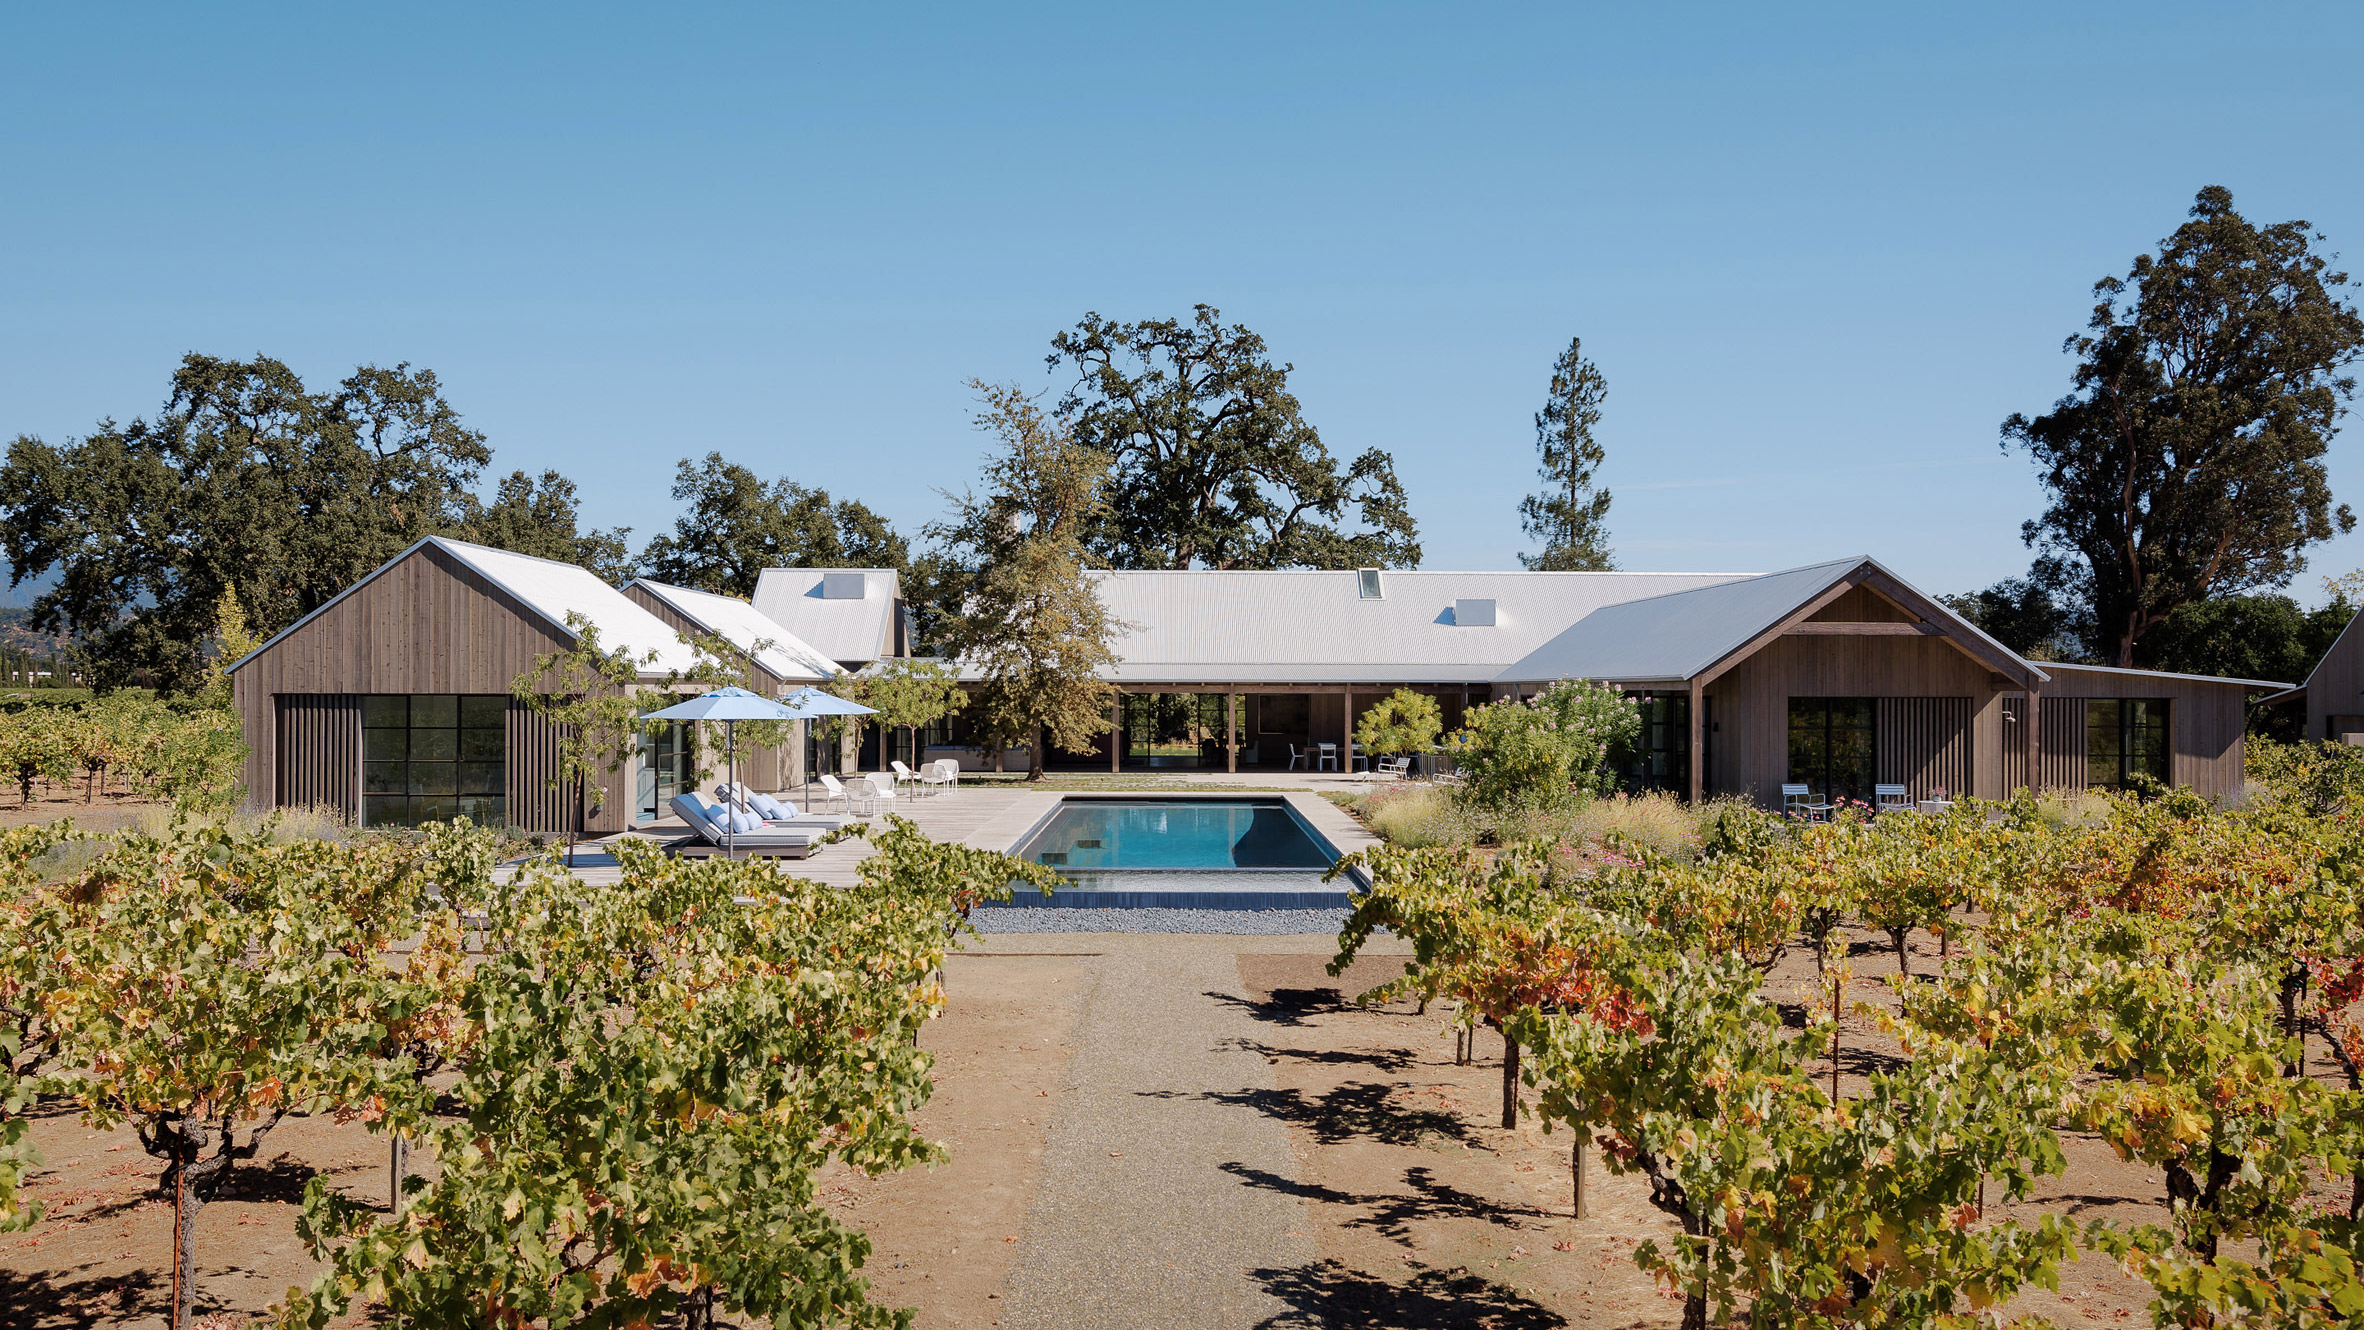 Field Architecture situates Zinfandel house in California wine country